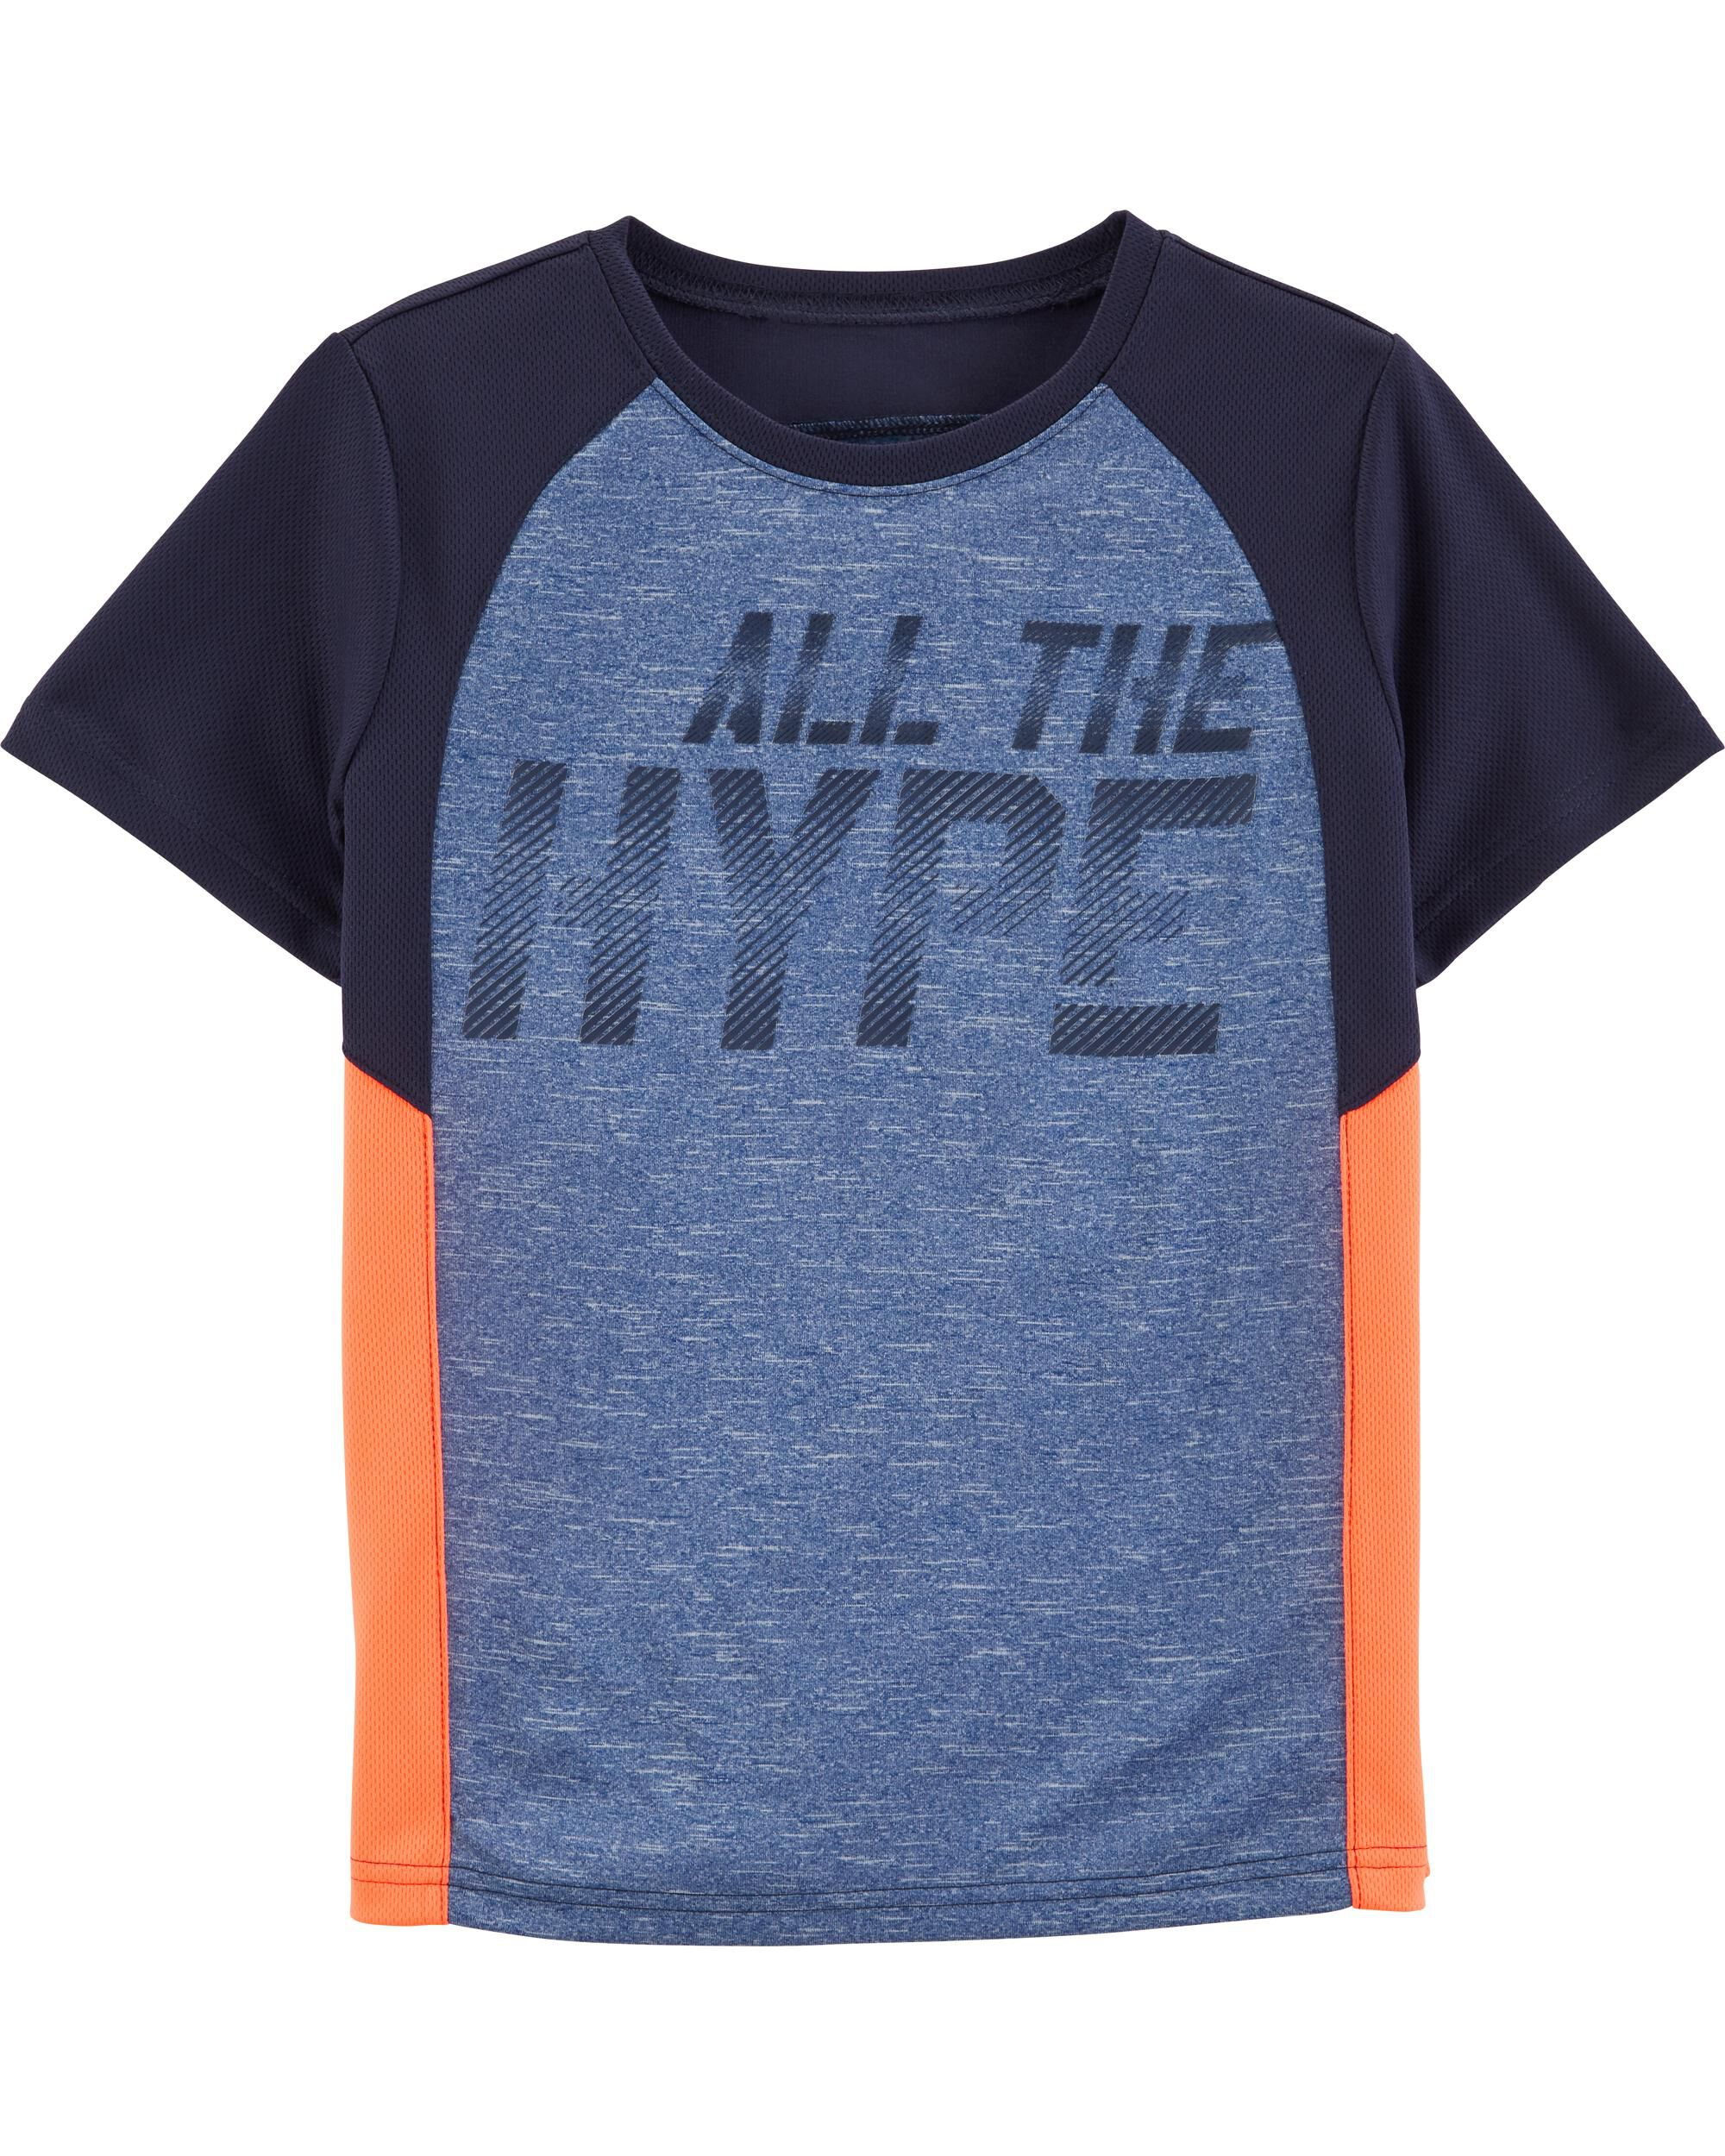 *Clearance*  All The Hype Active Tee